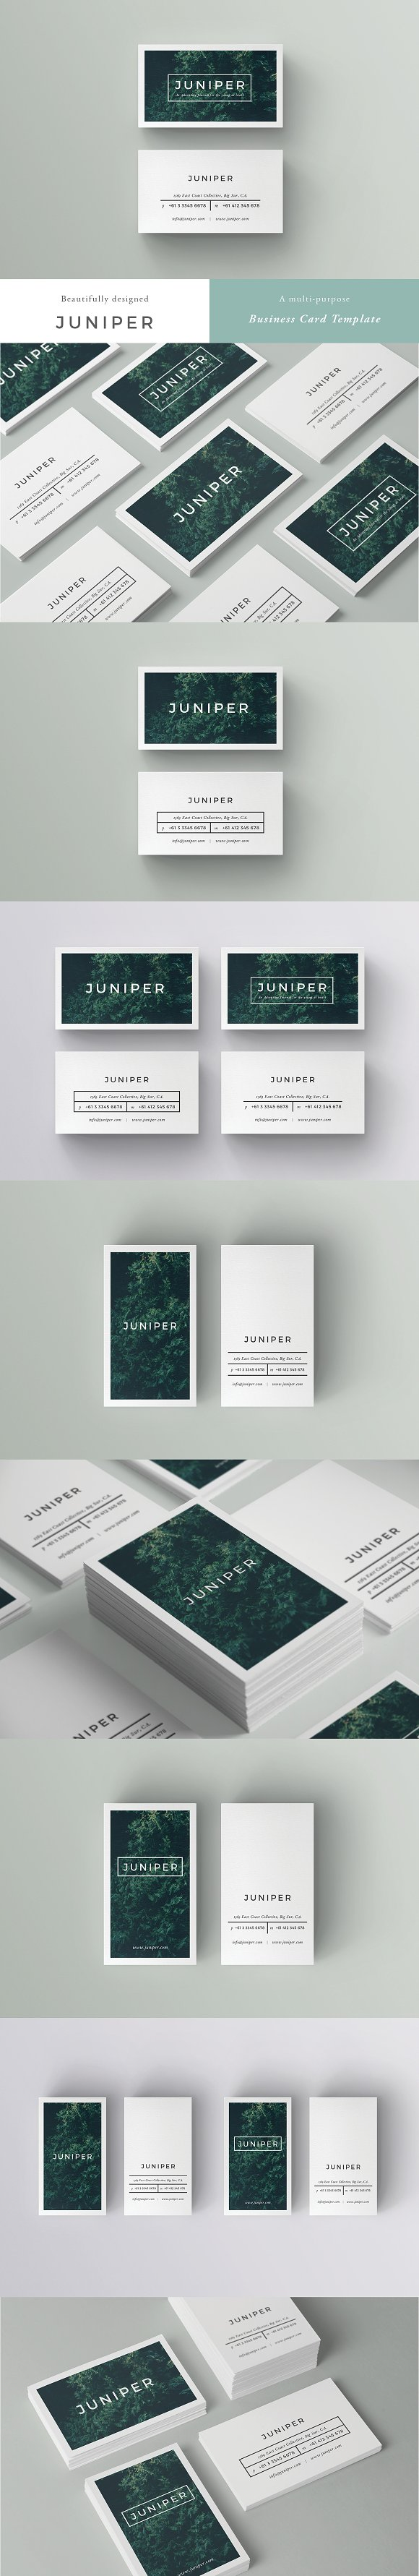 20 clean and minimal business cards that stand out creative market juniper business card template colourmoves